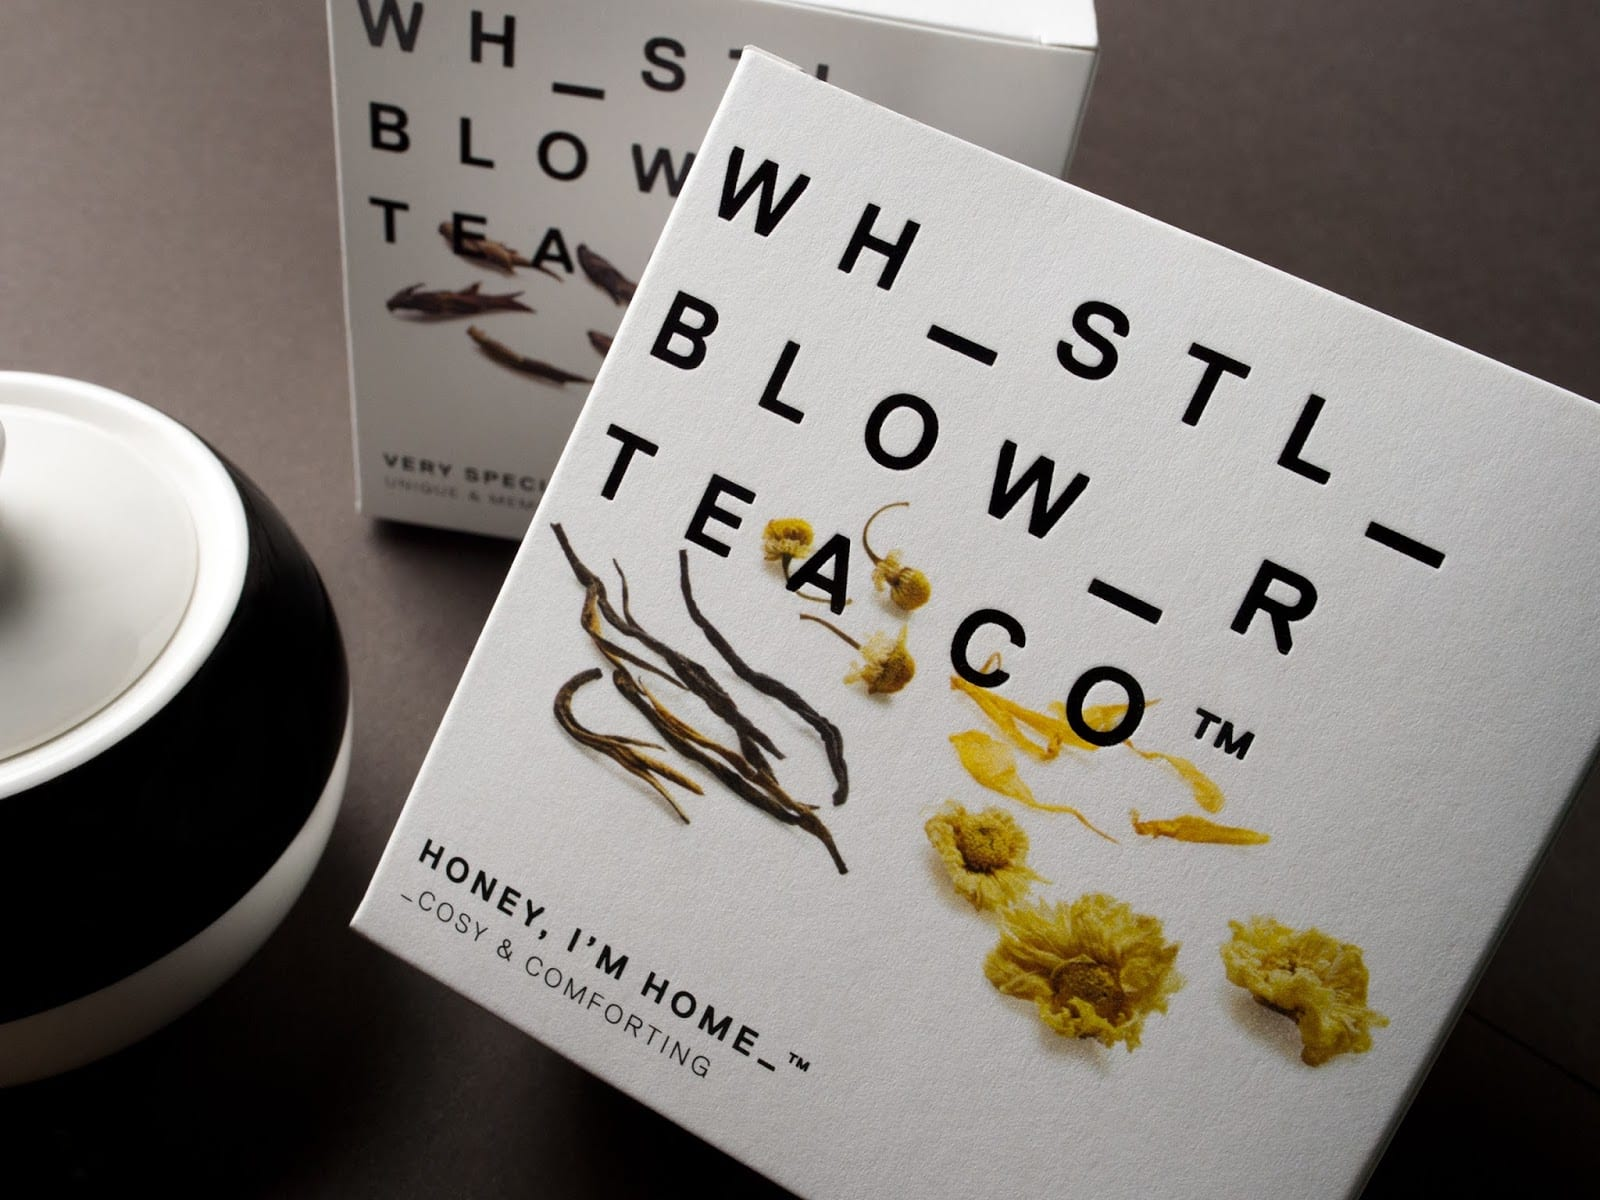 6 BlackSquidDesign Whistle Blower Tea Co pack05 - Ach, tie obaly – Whistle Blower Tea Co.